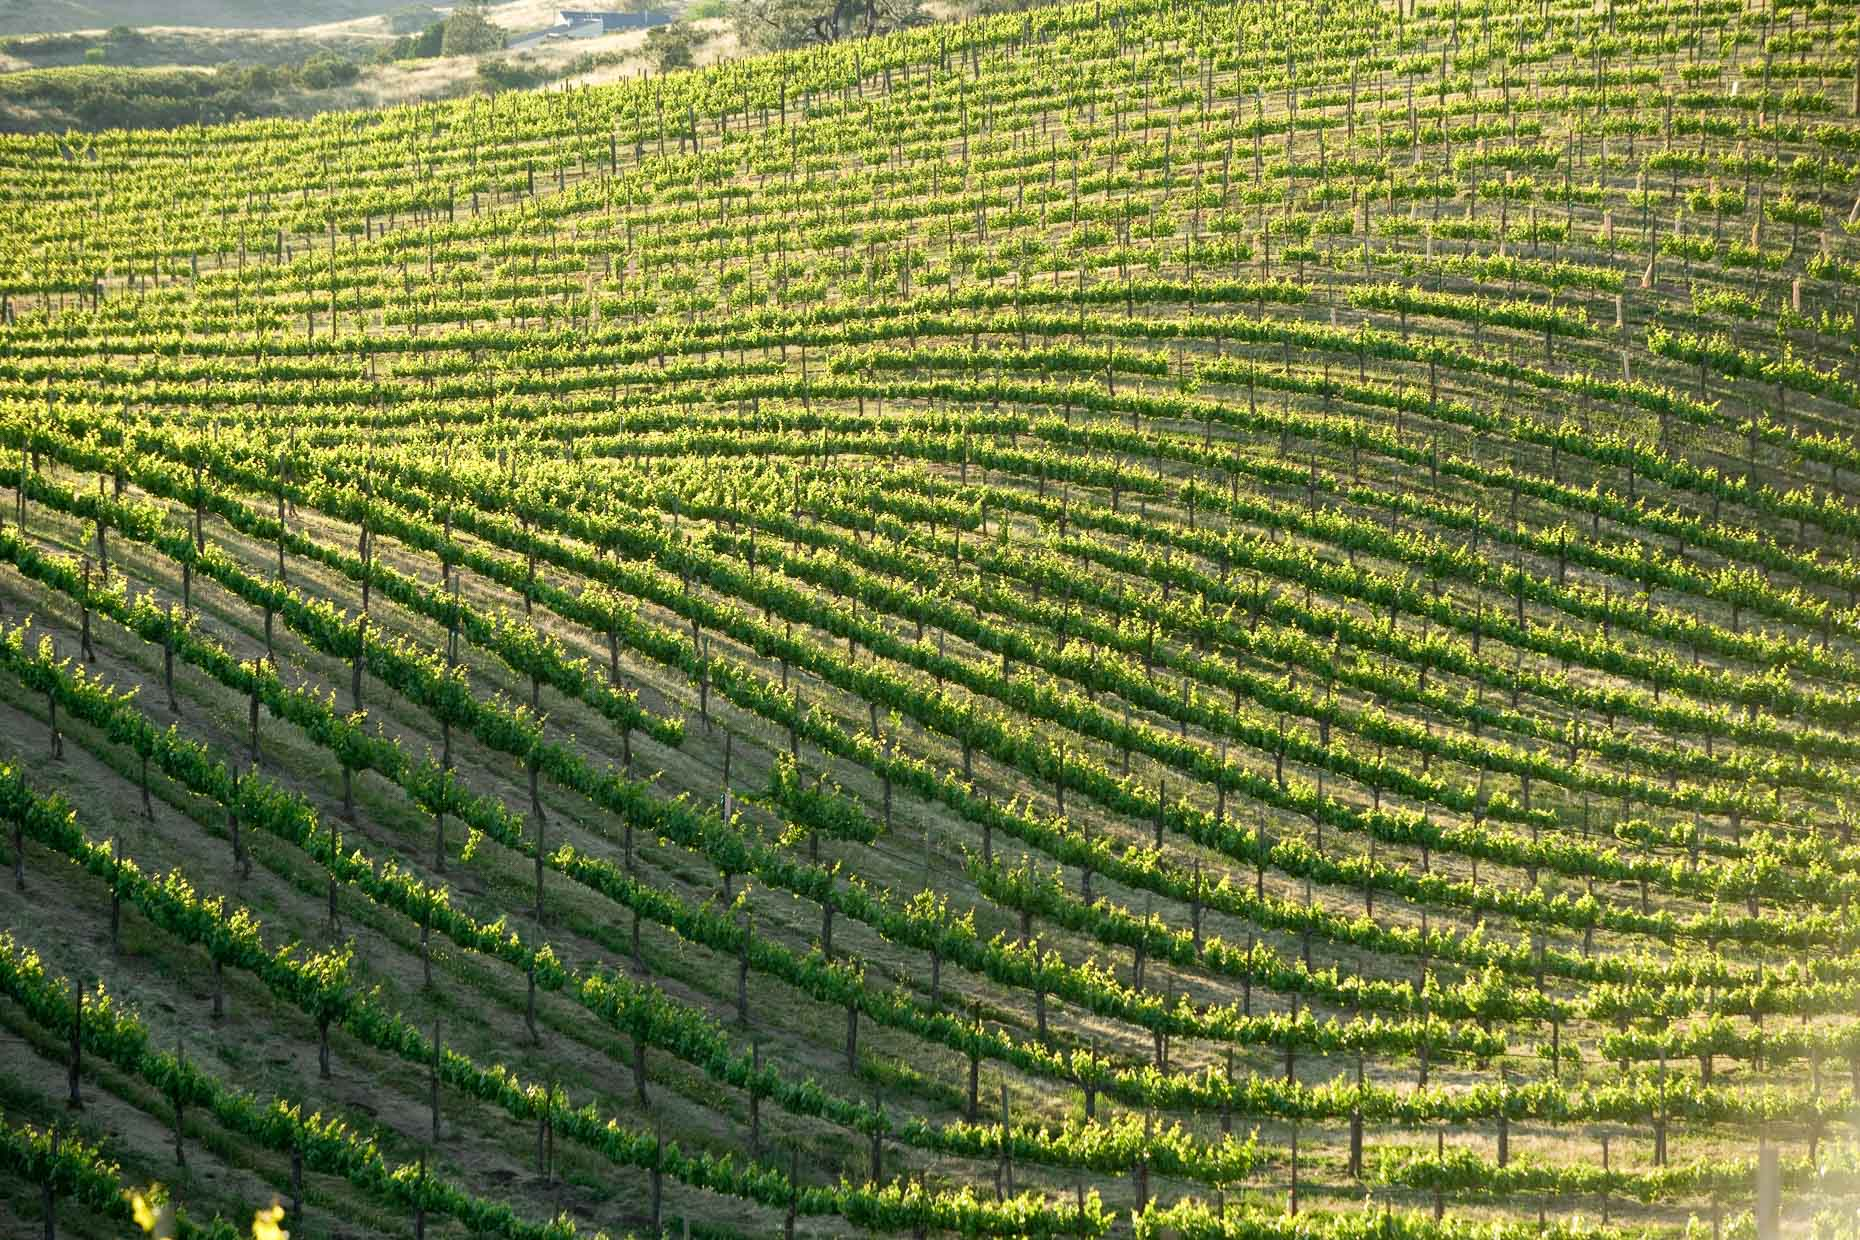 Grape wine vineyard rolling hills in Soledad, California by David Zaitz